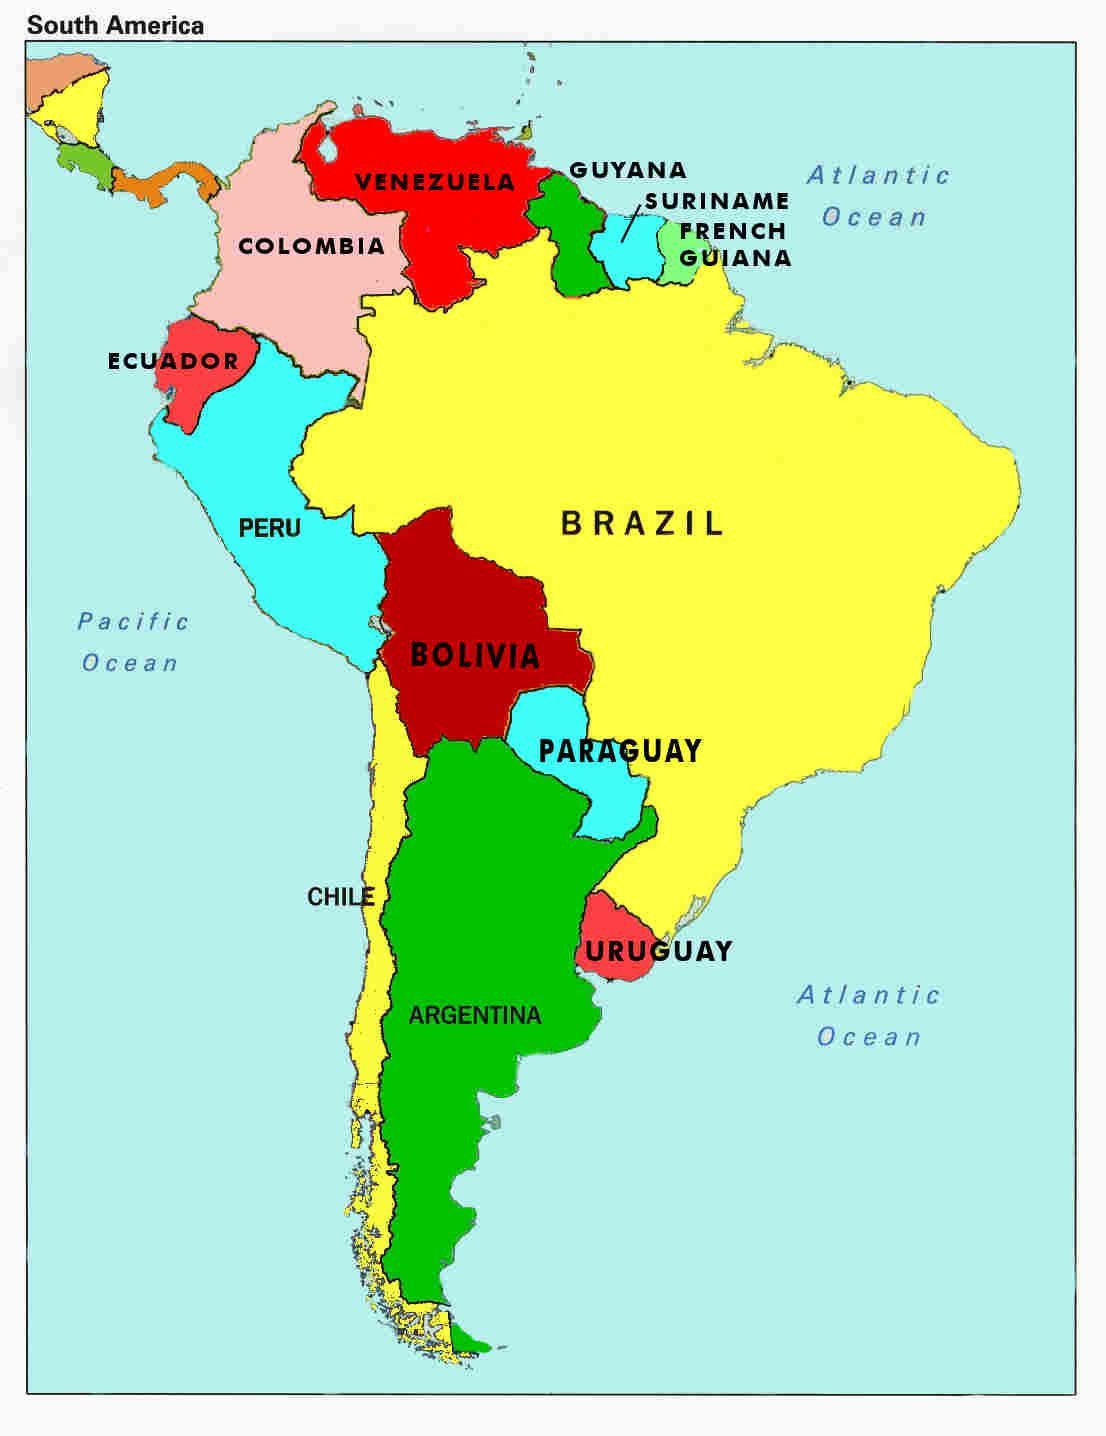 south america map and capitals quiz Scientific Central America On World Map Spanish Speaking Capitals